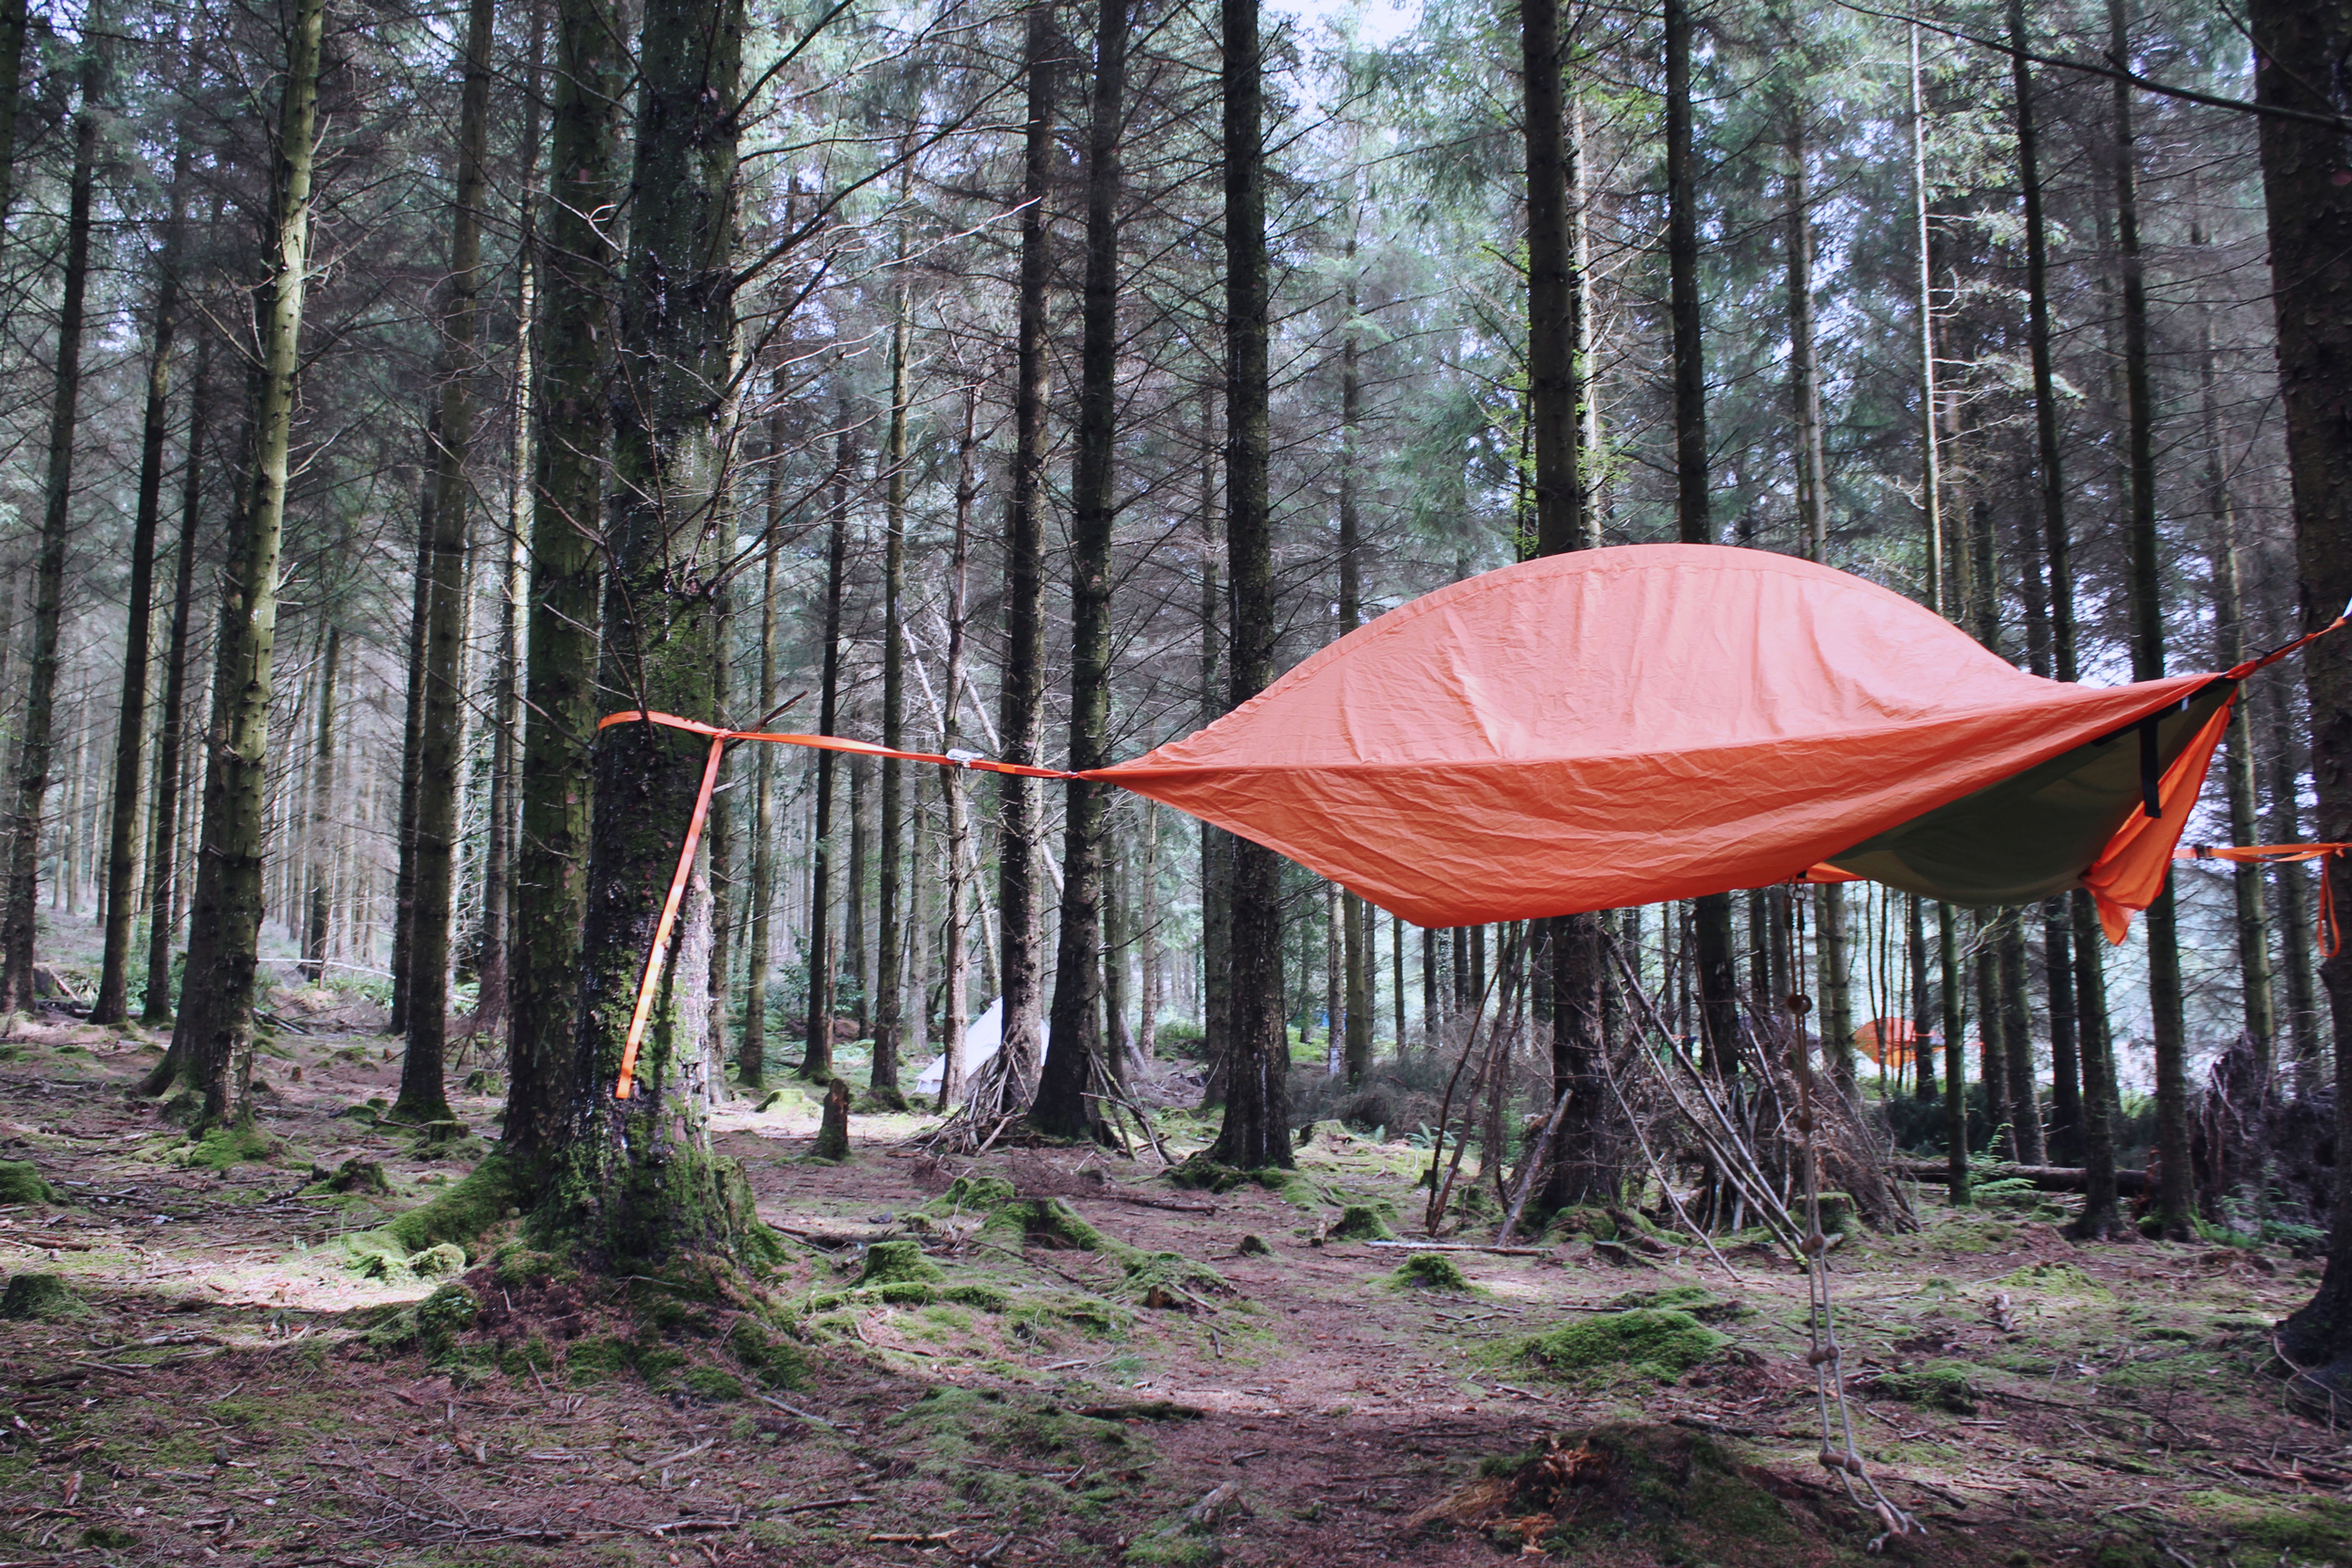 Treetop Camping in suspended tents, Haldon Forest